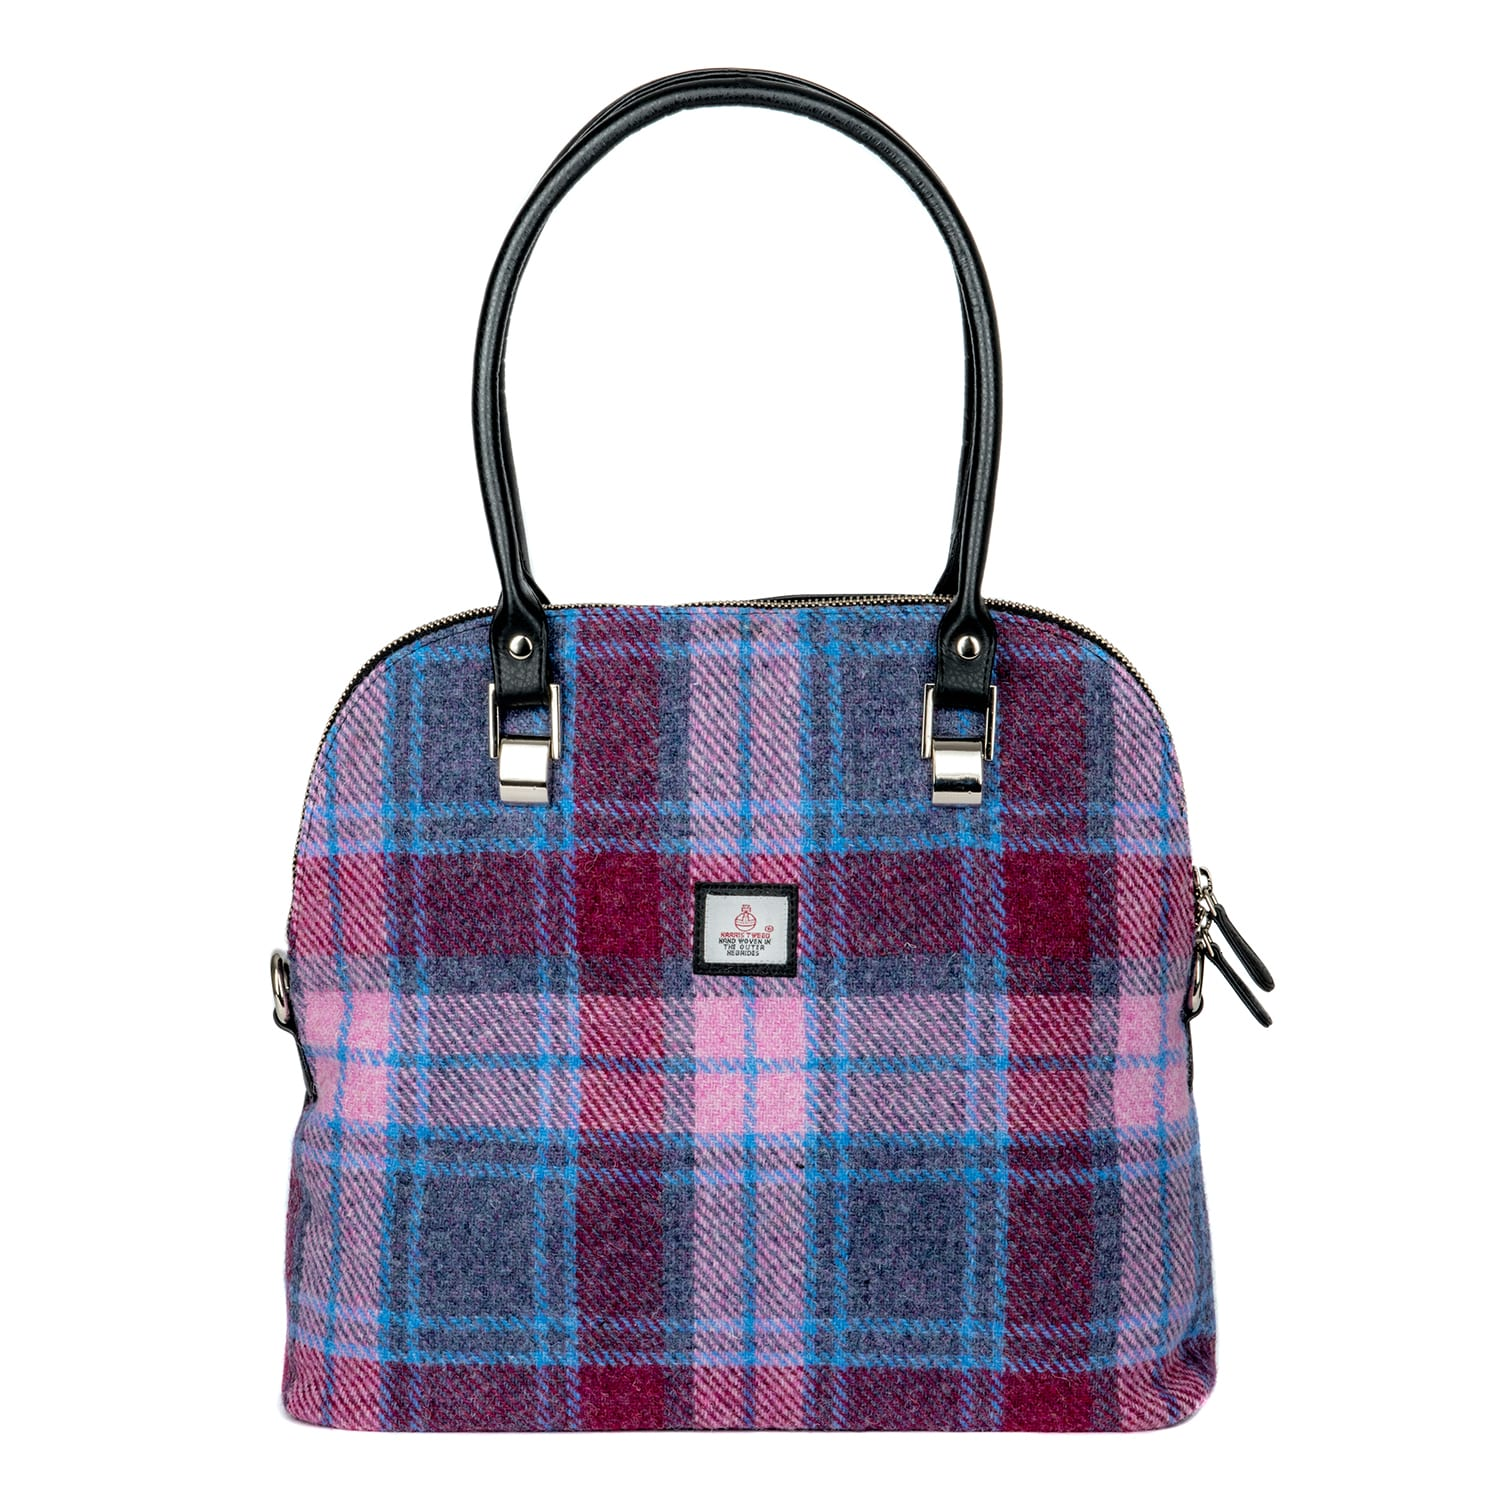 02a66552918a Maccessori  Harris Tweed Large Bowling Bag - Anglotopia Store